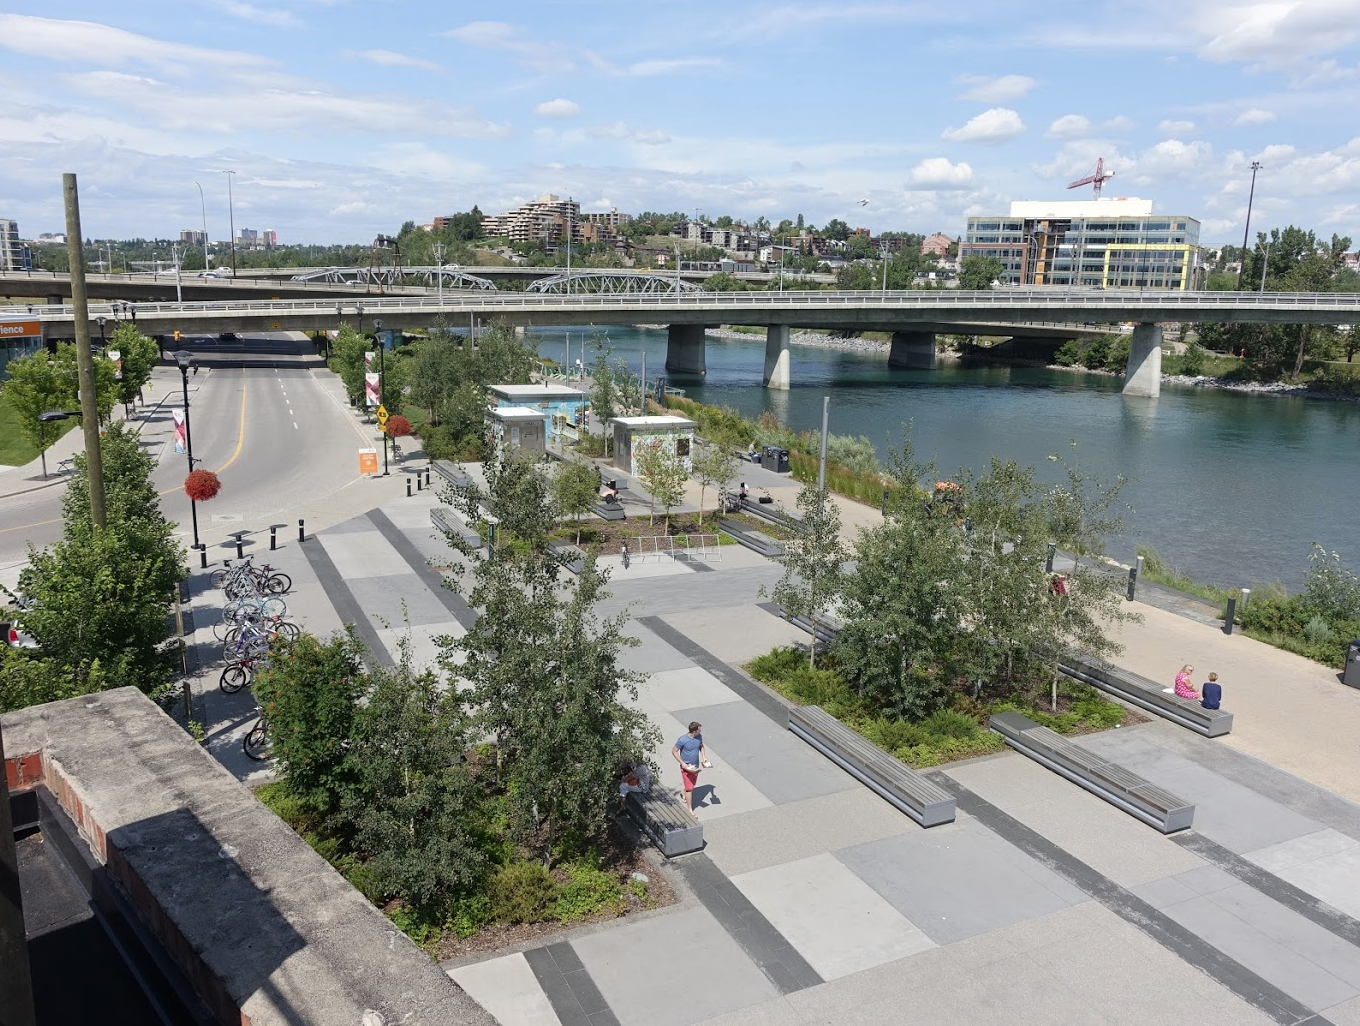 Calgary's equivalent to Nashville's green beach would be the East Village plaza along the Bow River .